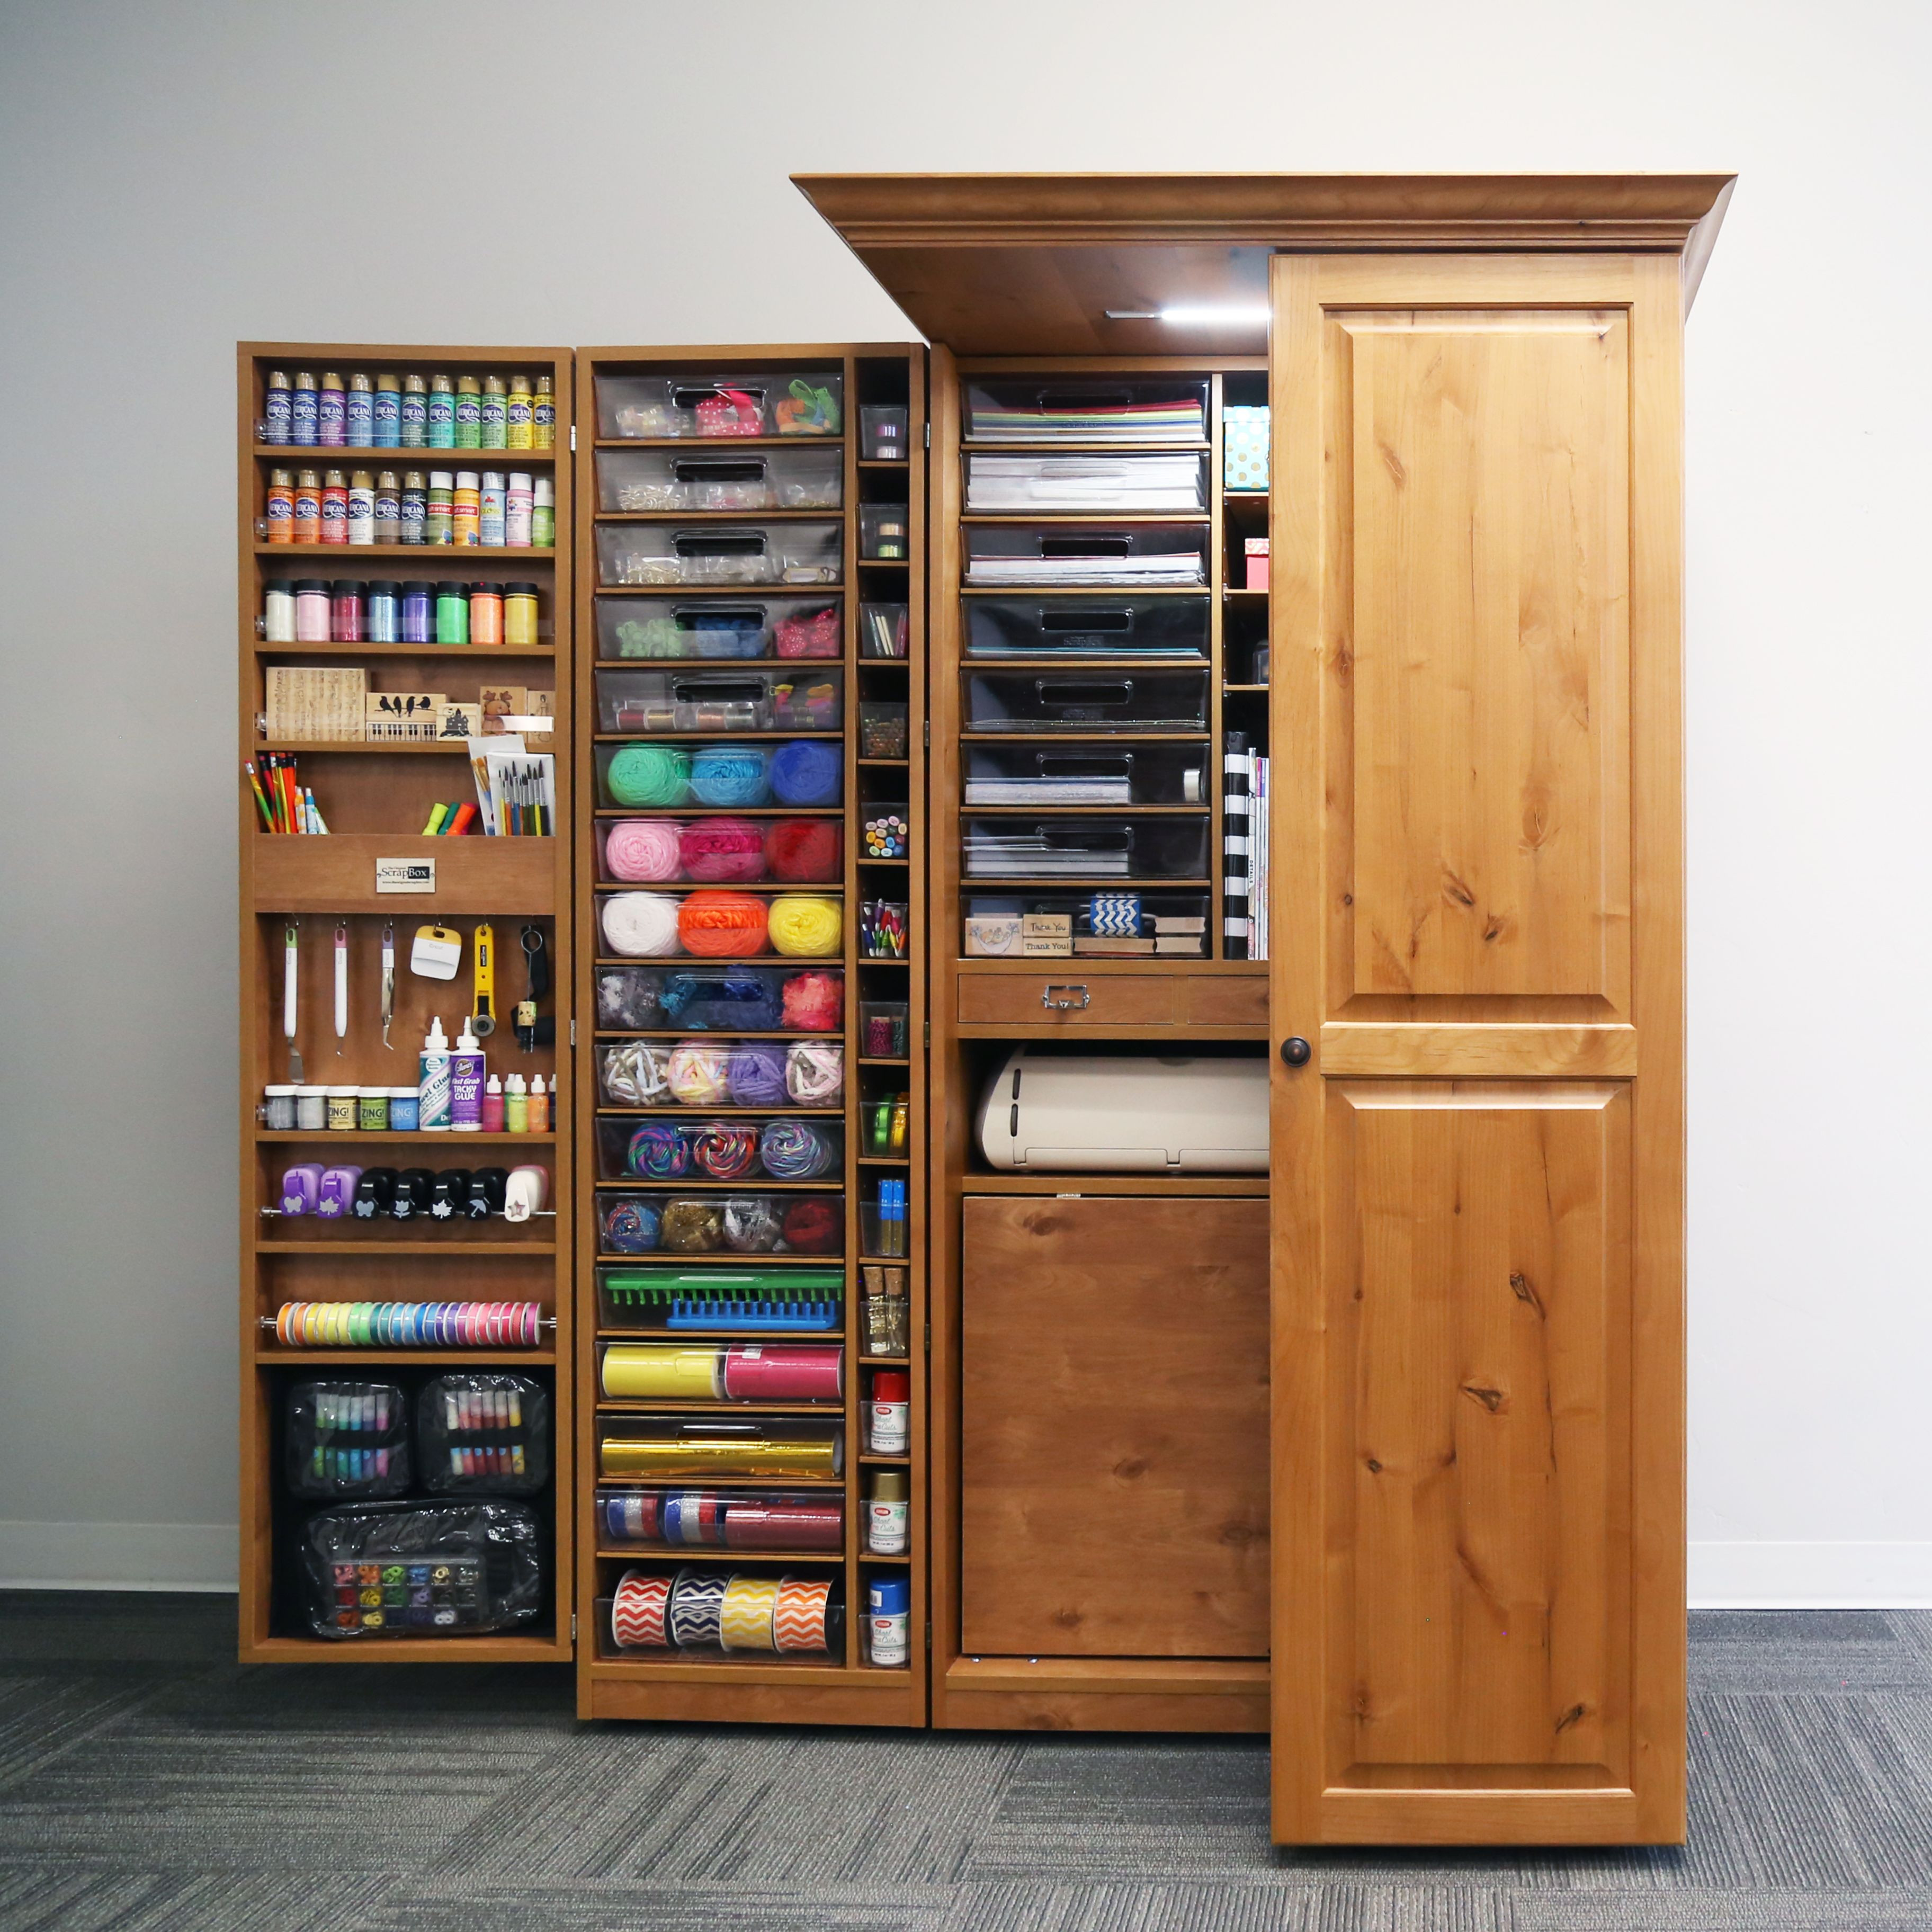 20 Ideas for Craft organizer Cabinets - Home Inspiration ...